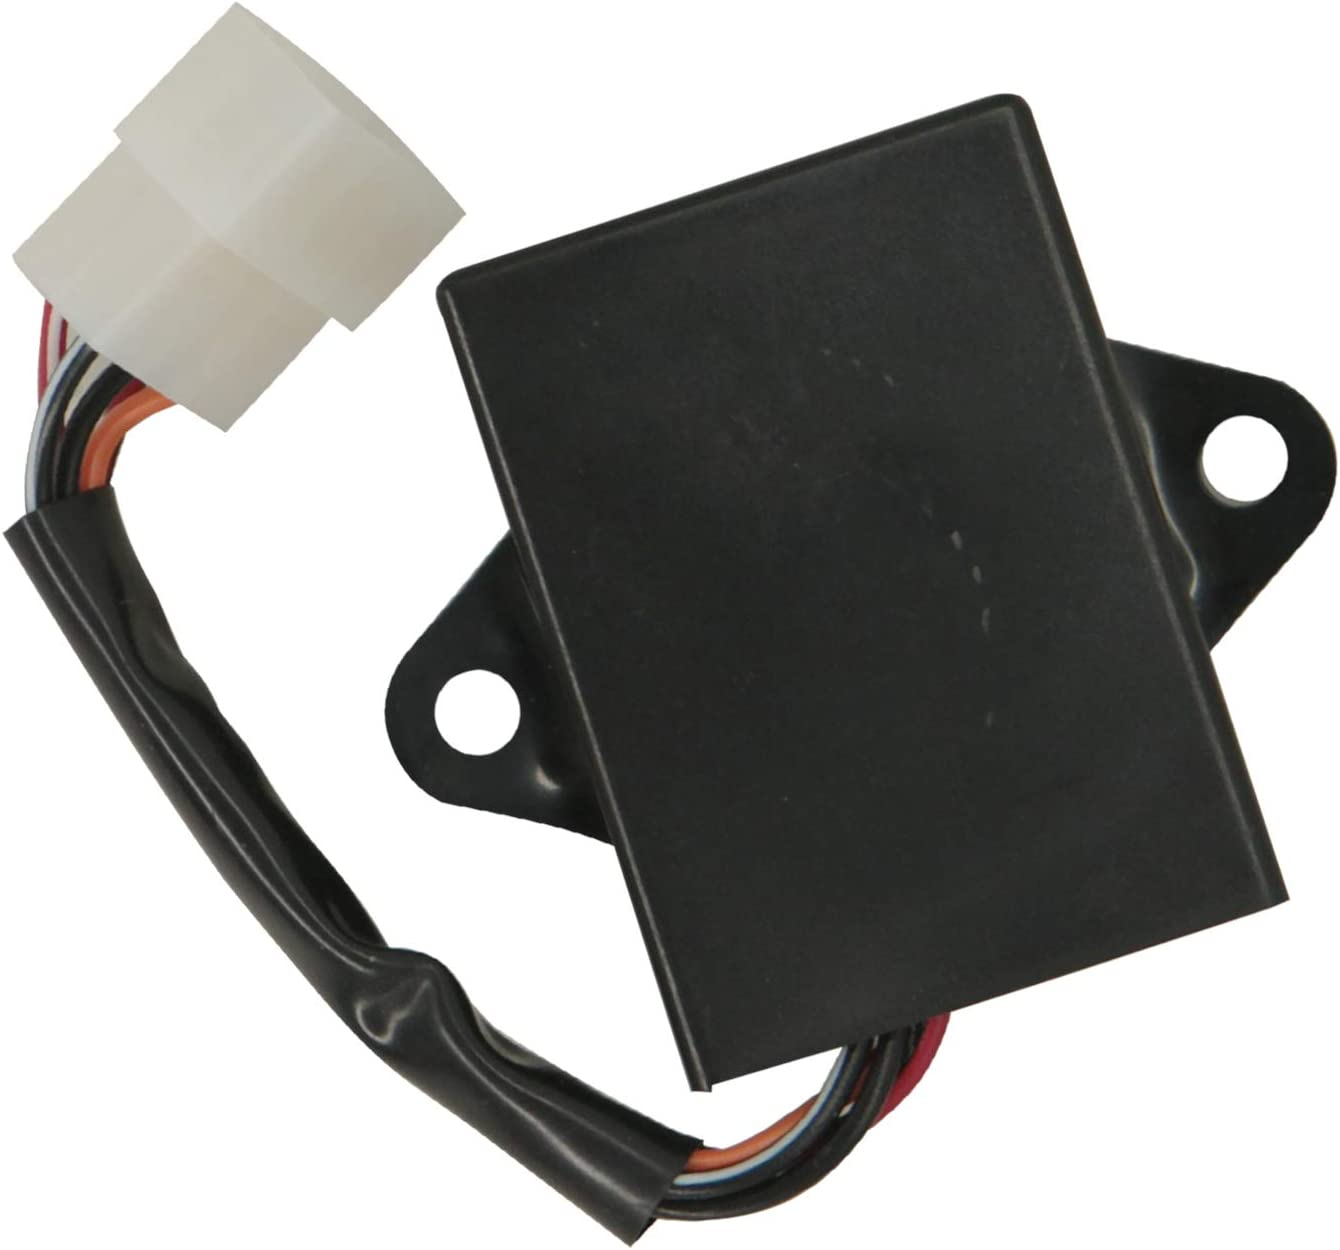 Max 40% OFF Disenparts Ignition CDI Box Ranking TOP7 Replaces 99999-02368 1990-1994 Y for